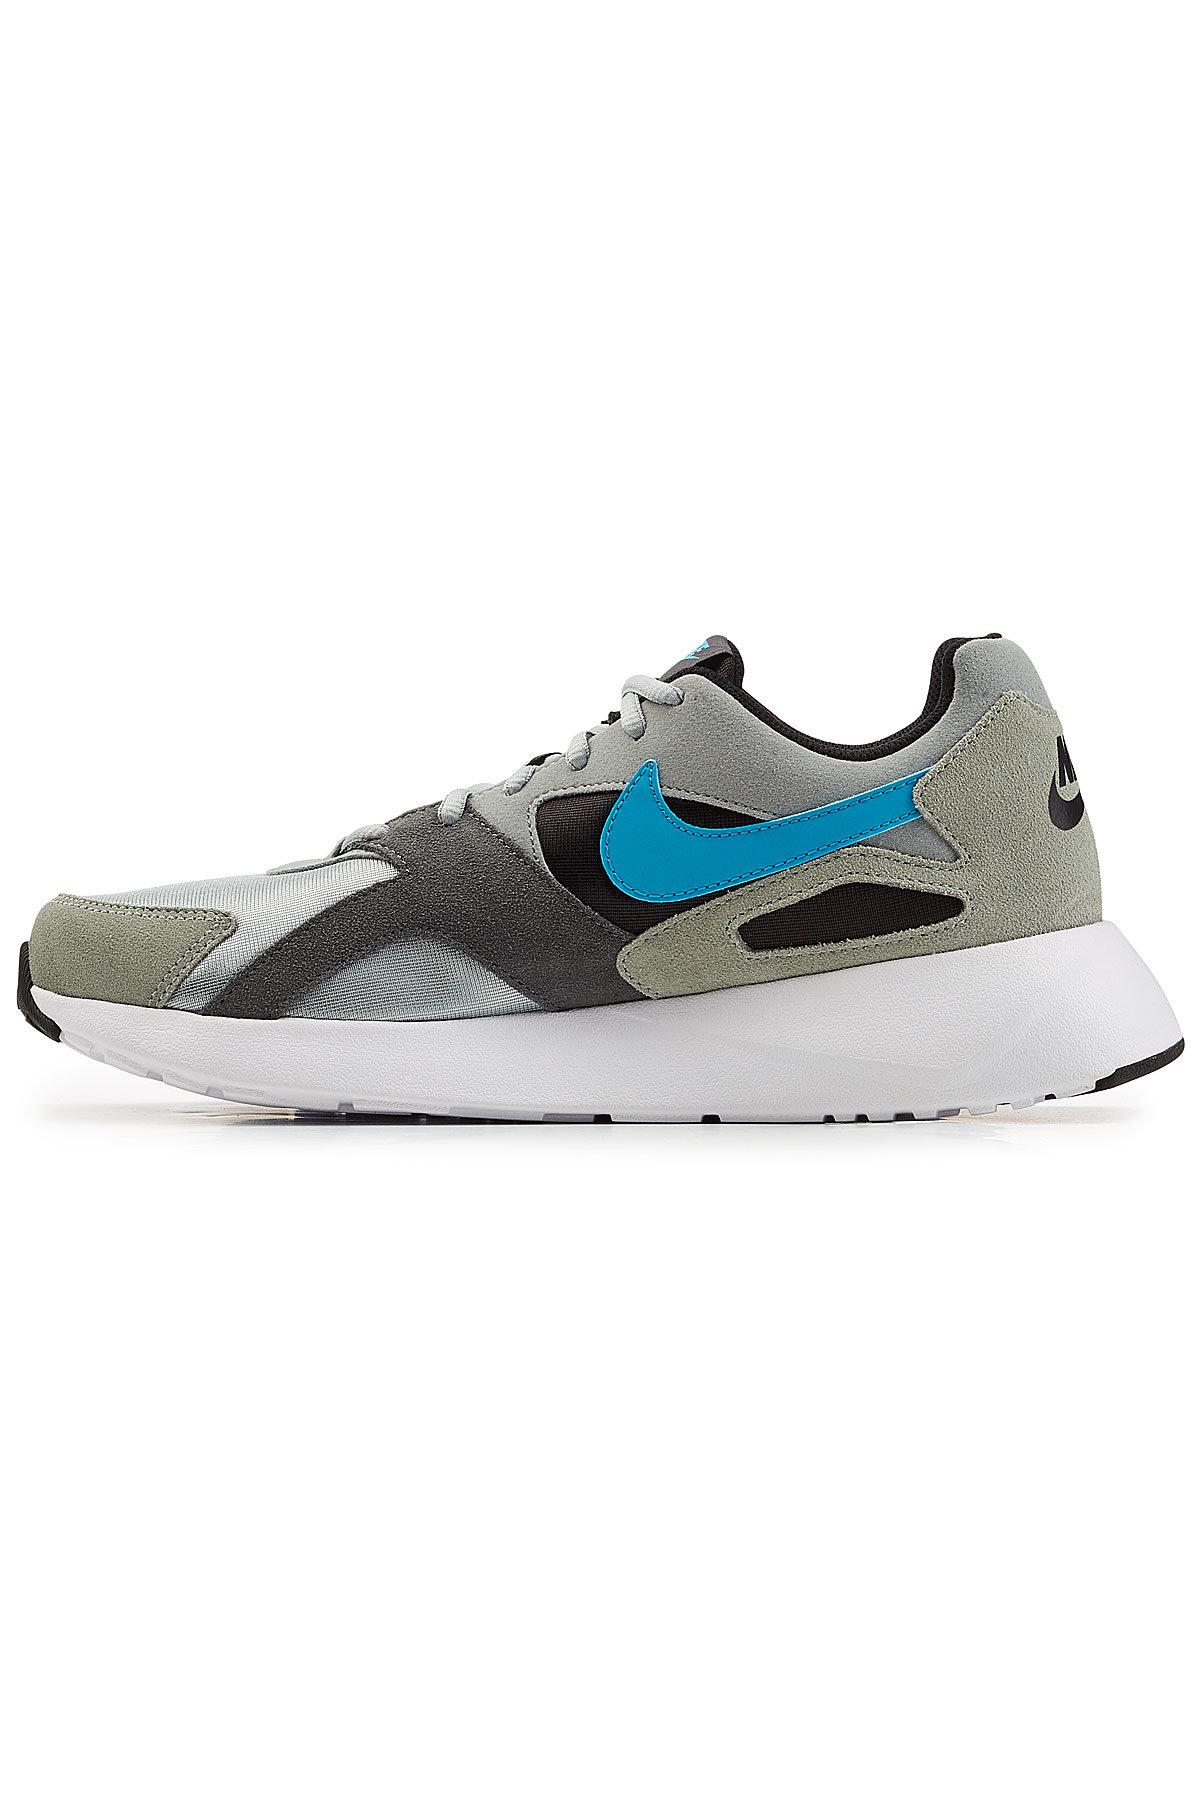 size 40 7e20c 74635 Nike Pantheos Sneakers With Leather And Suede for Men - Lyst